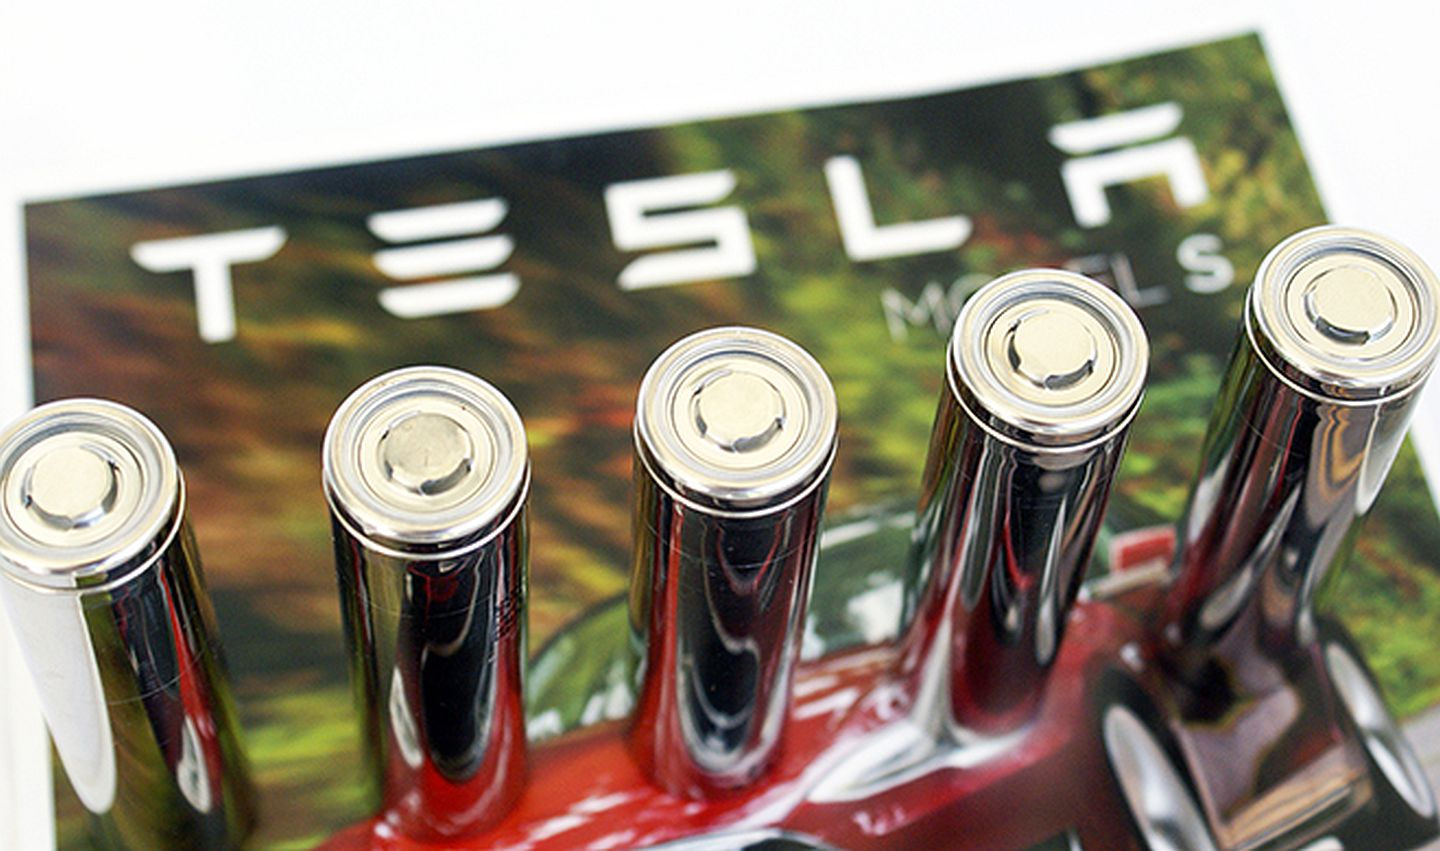 Tesla Next Generation Battery Development, in Colorado?